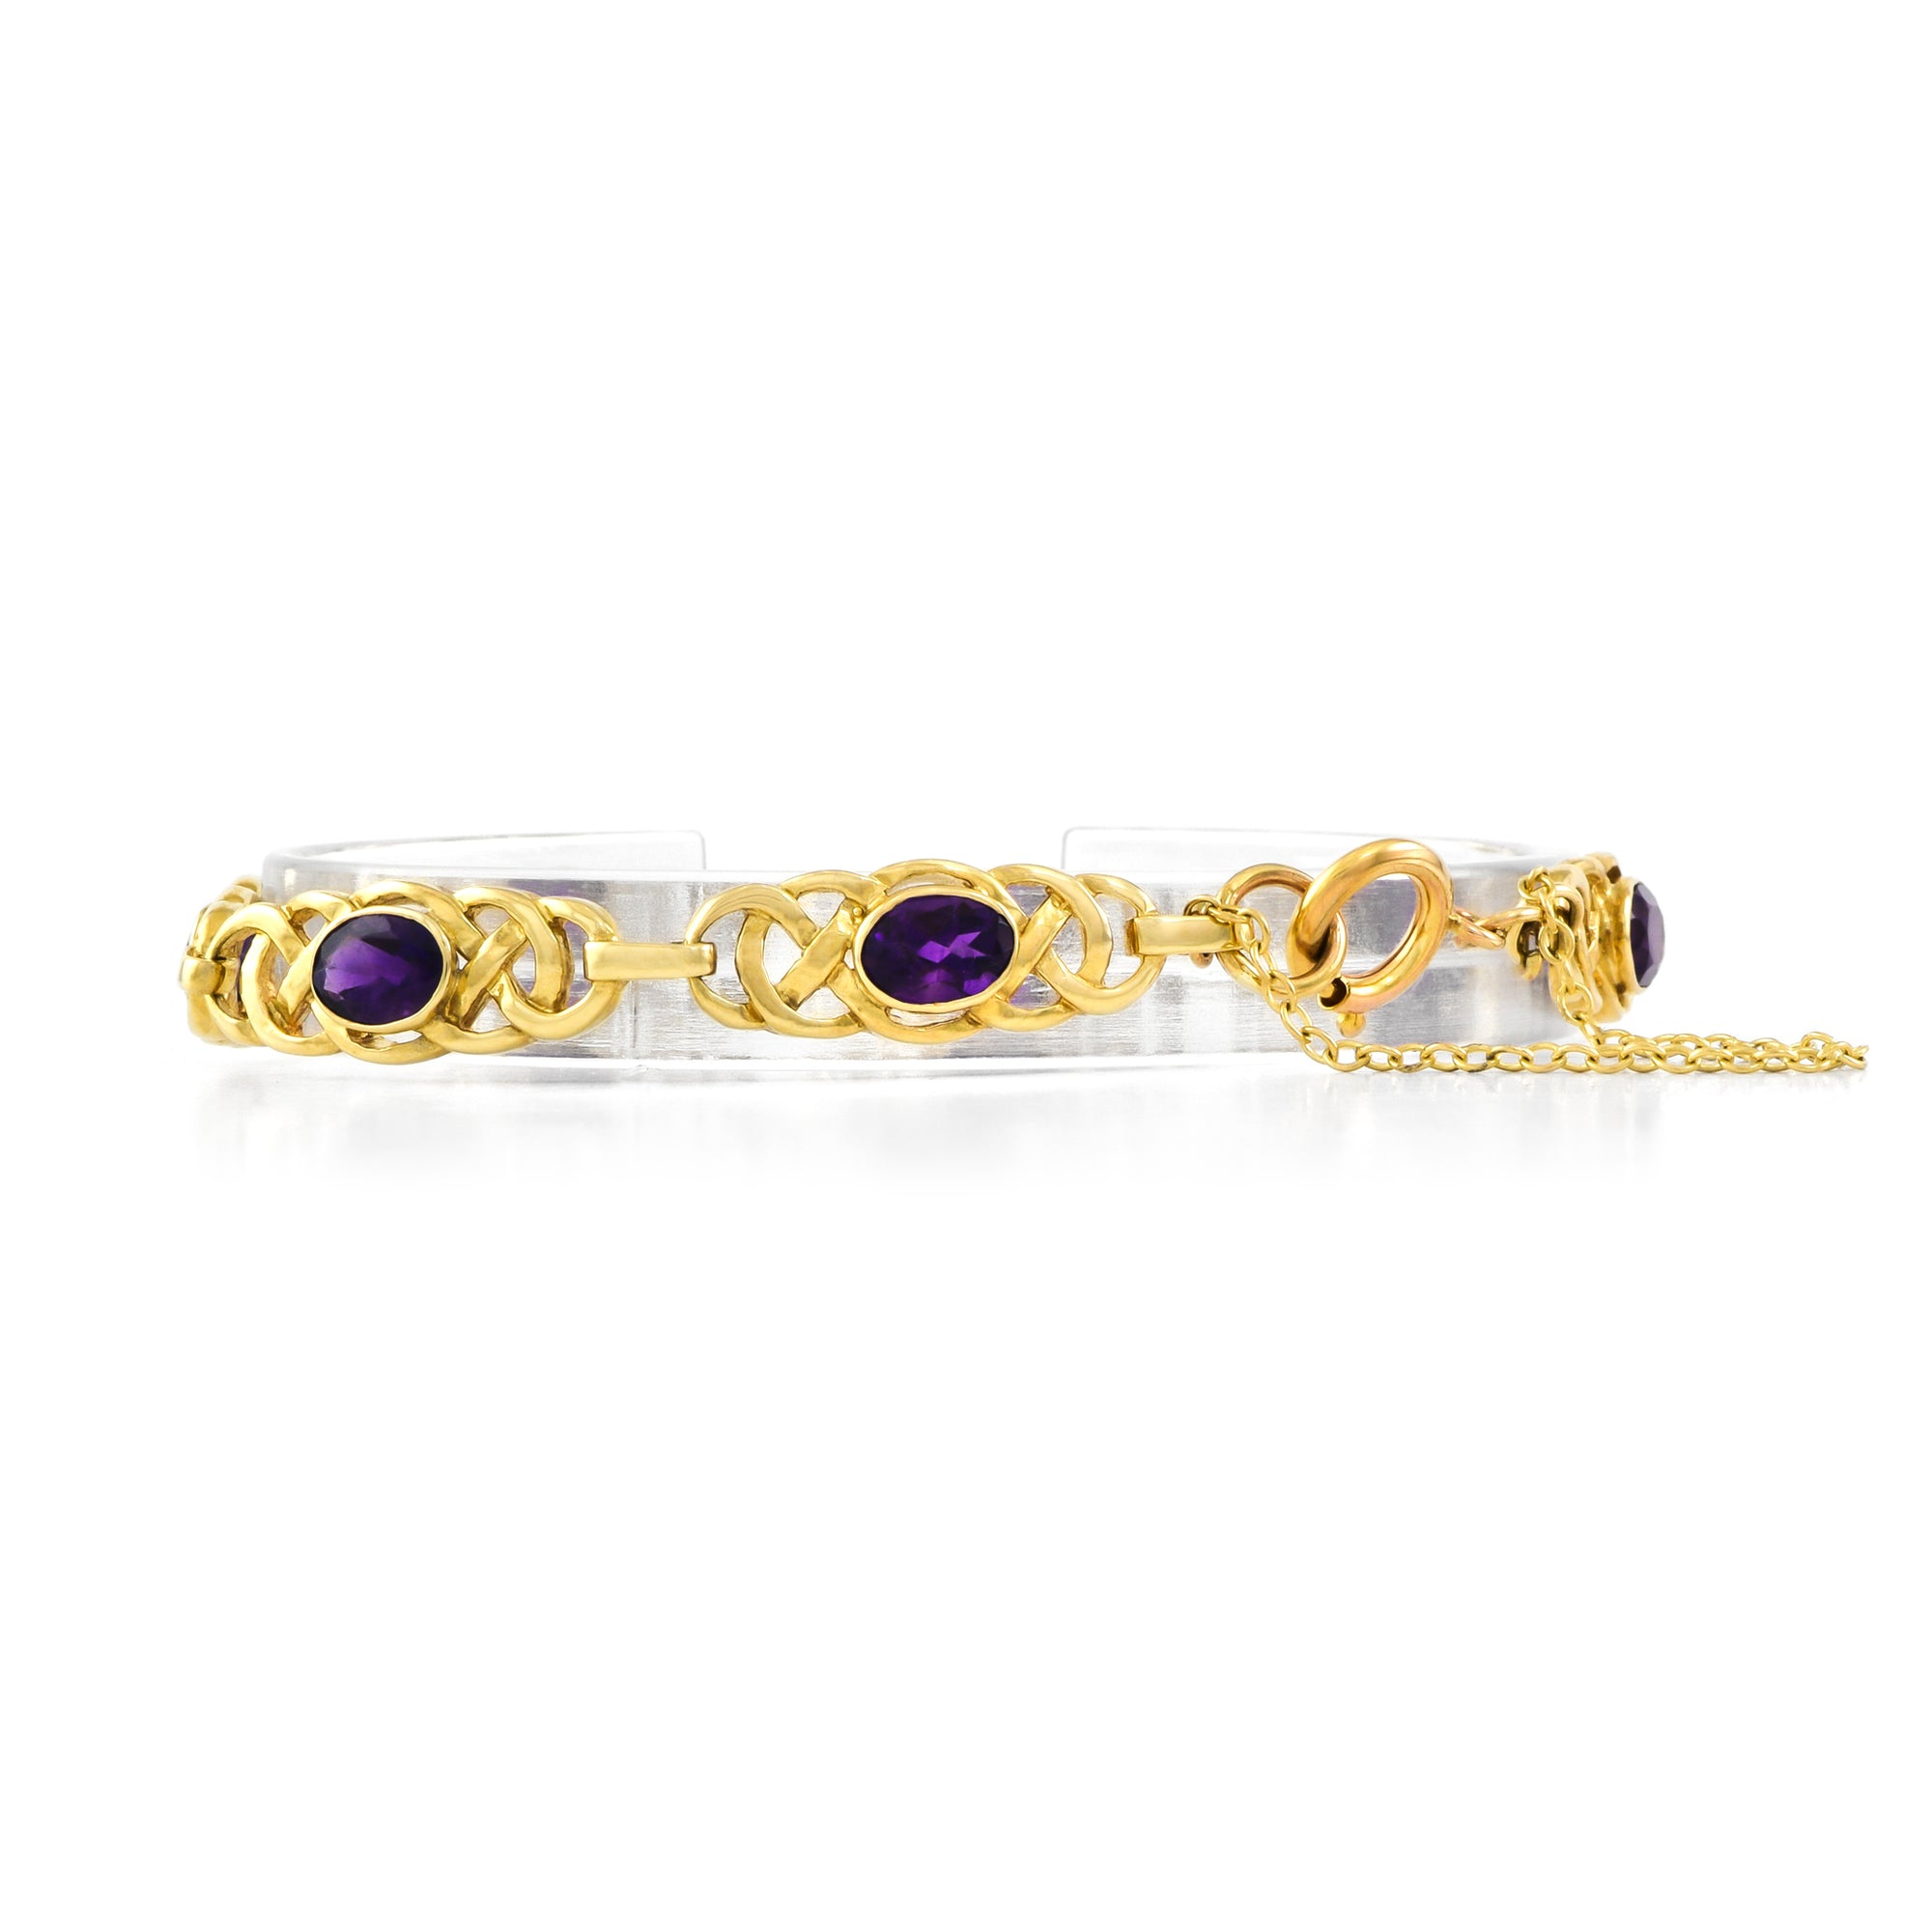 Vintage 9ct Yellow Gold Amethyst Bracelet